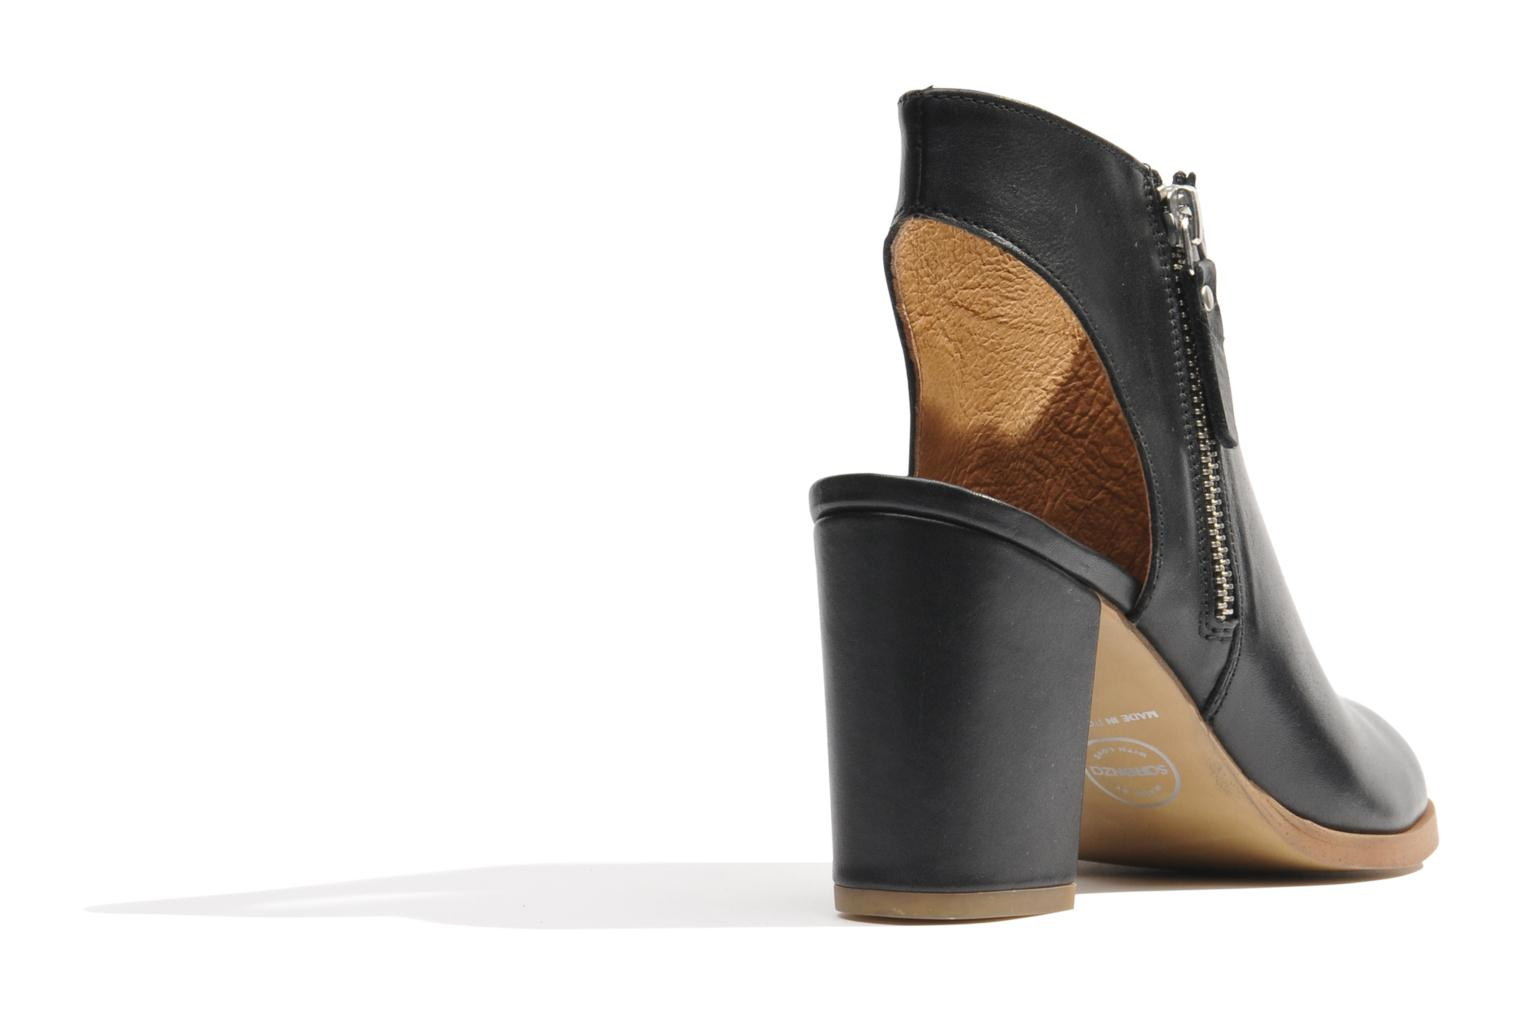 Ankle boots Made by SARENZA Guimauve #11 Black front view